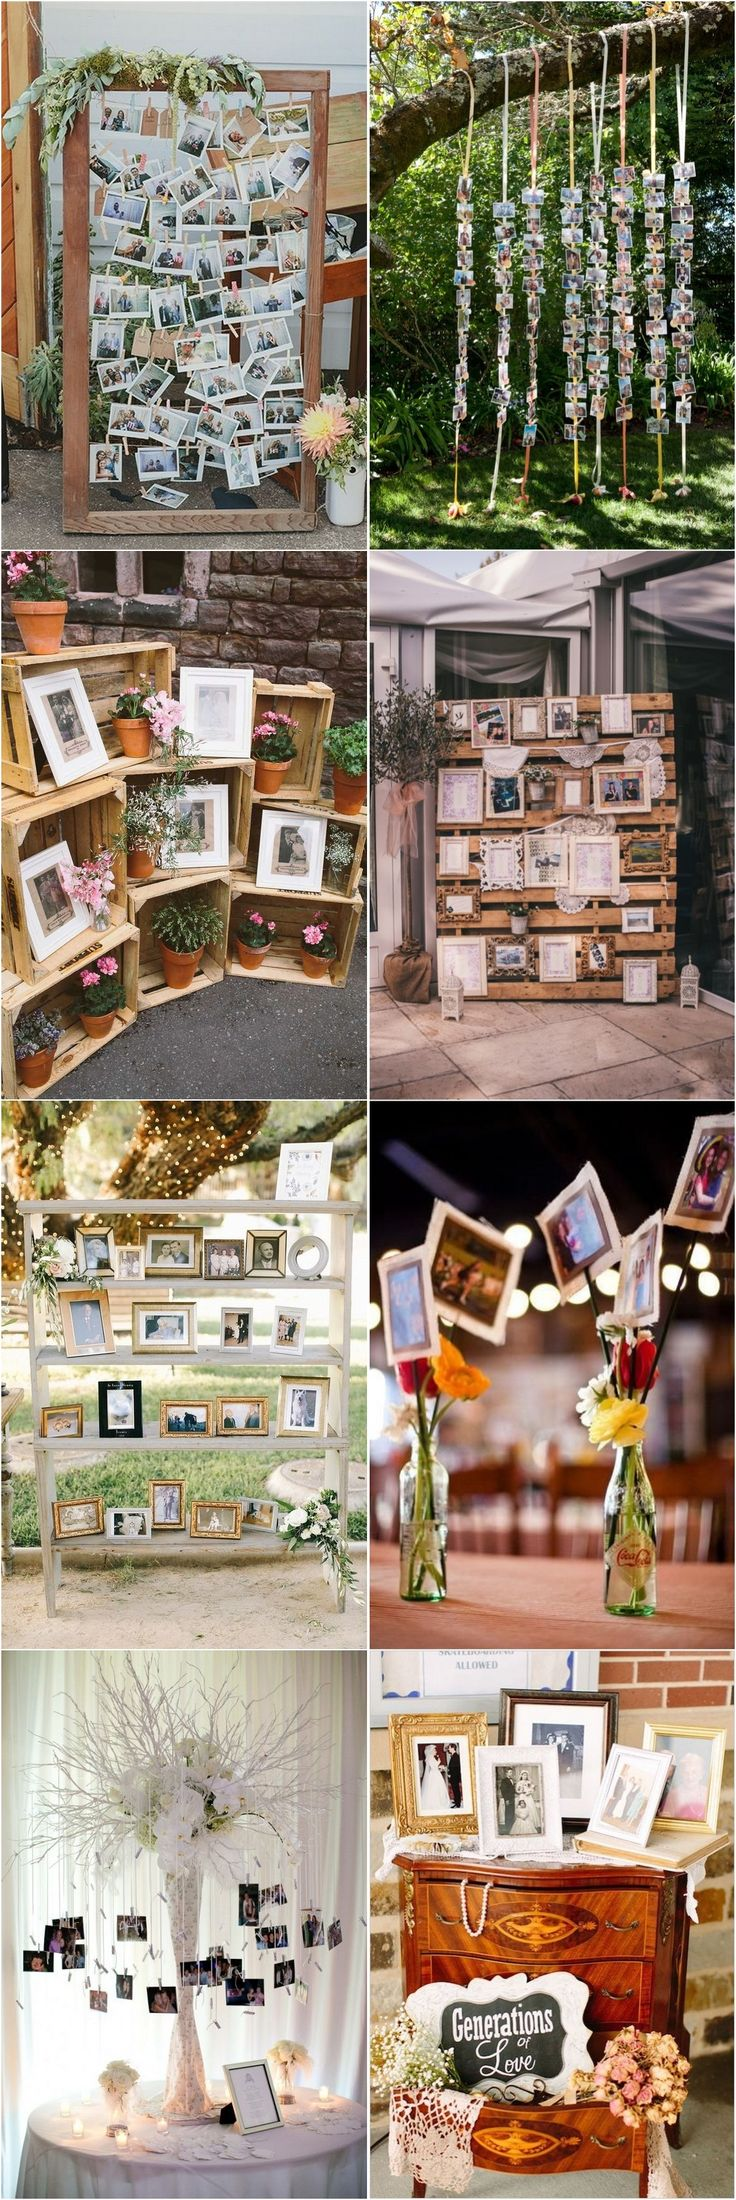 30 Wedding Photo Display Ideas You'll Want To Try Immediately / http://www.deerpearlflowers.com/wedding-photo-display-ideas/